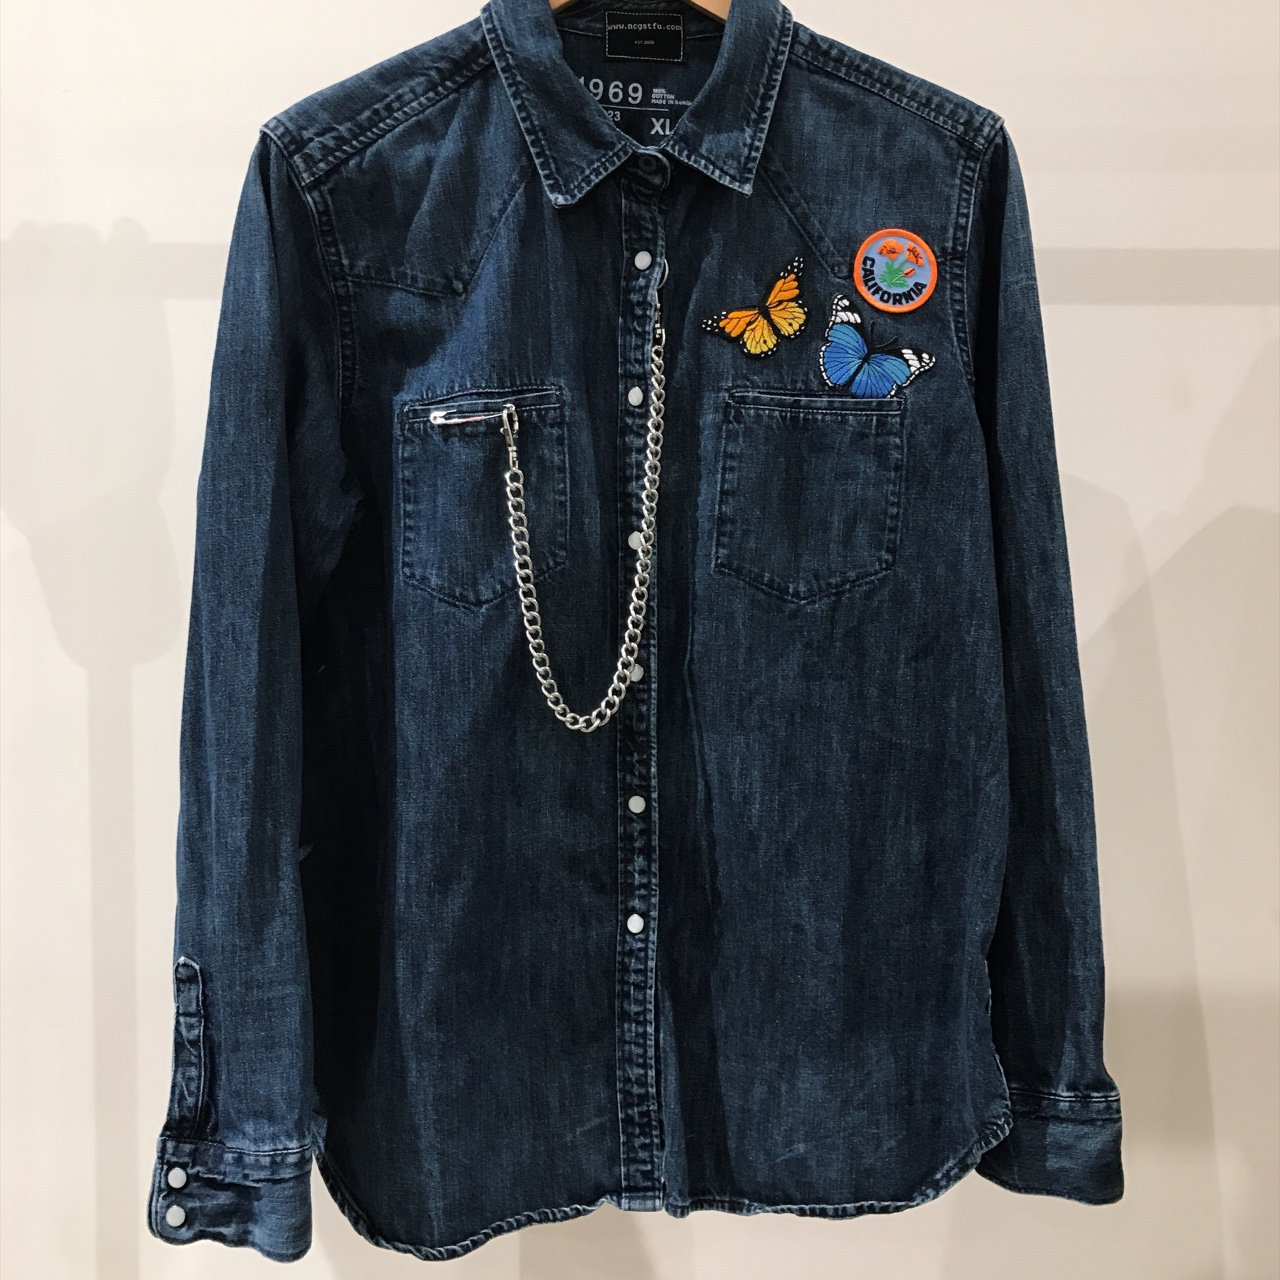 8b1ce5959a2 Custom Gap denim shirt with embroidery patches. Comes with a - Depop